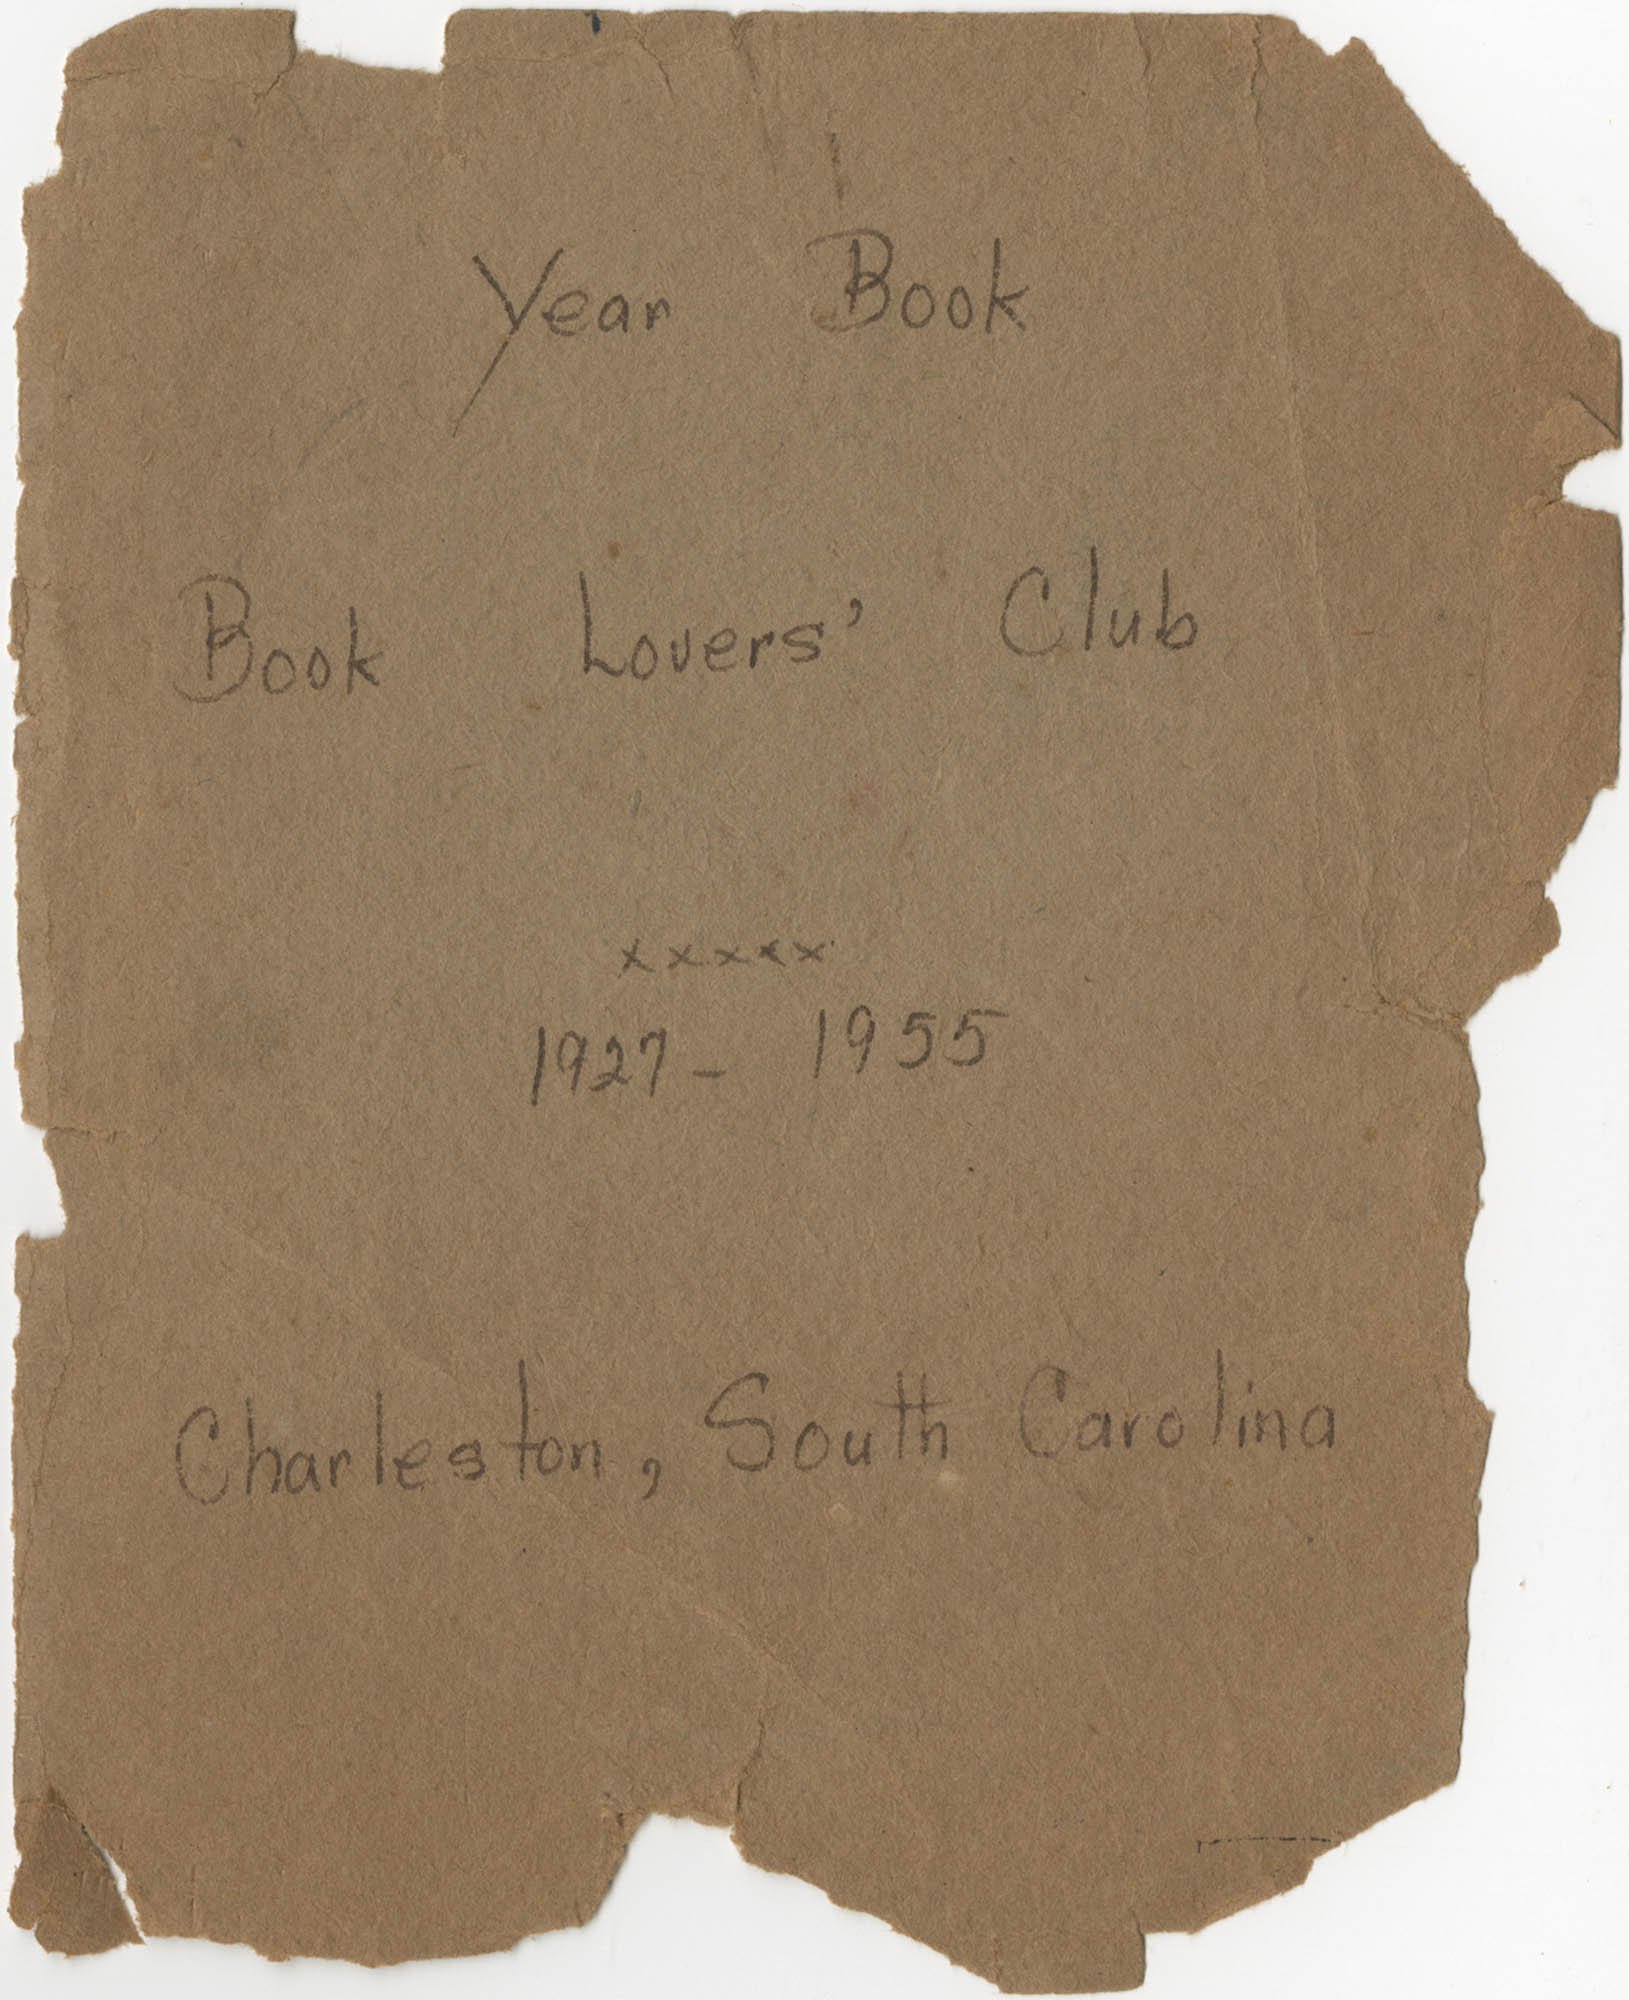 Year Book for the Book Lovers' Club, 1927-1955